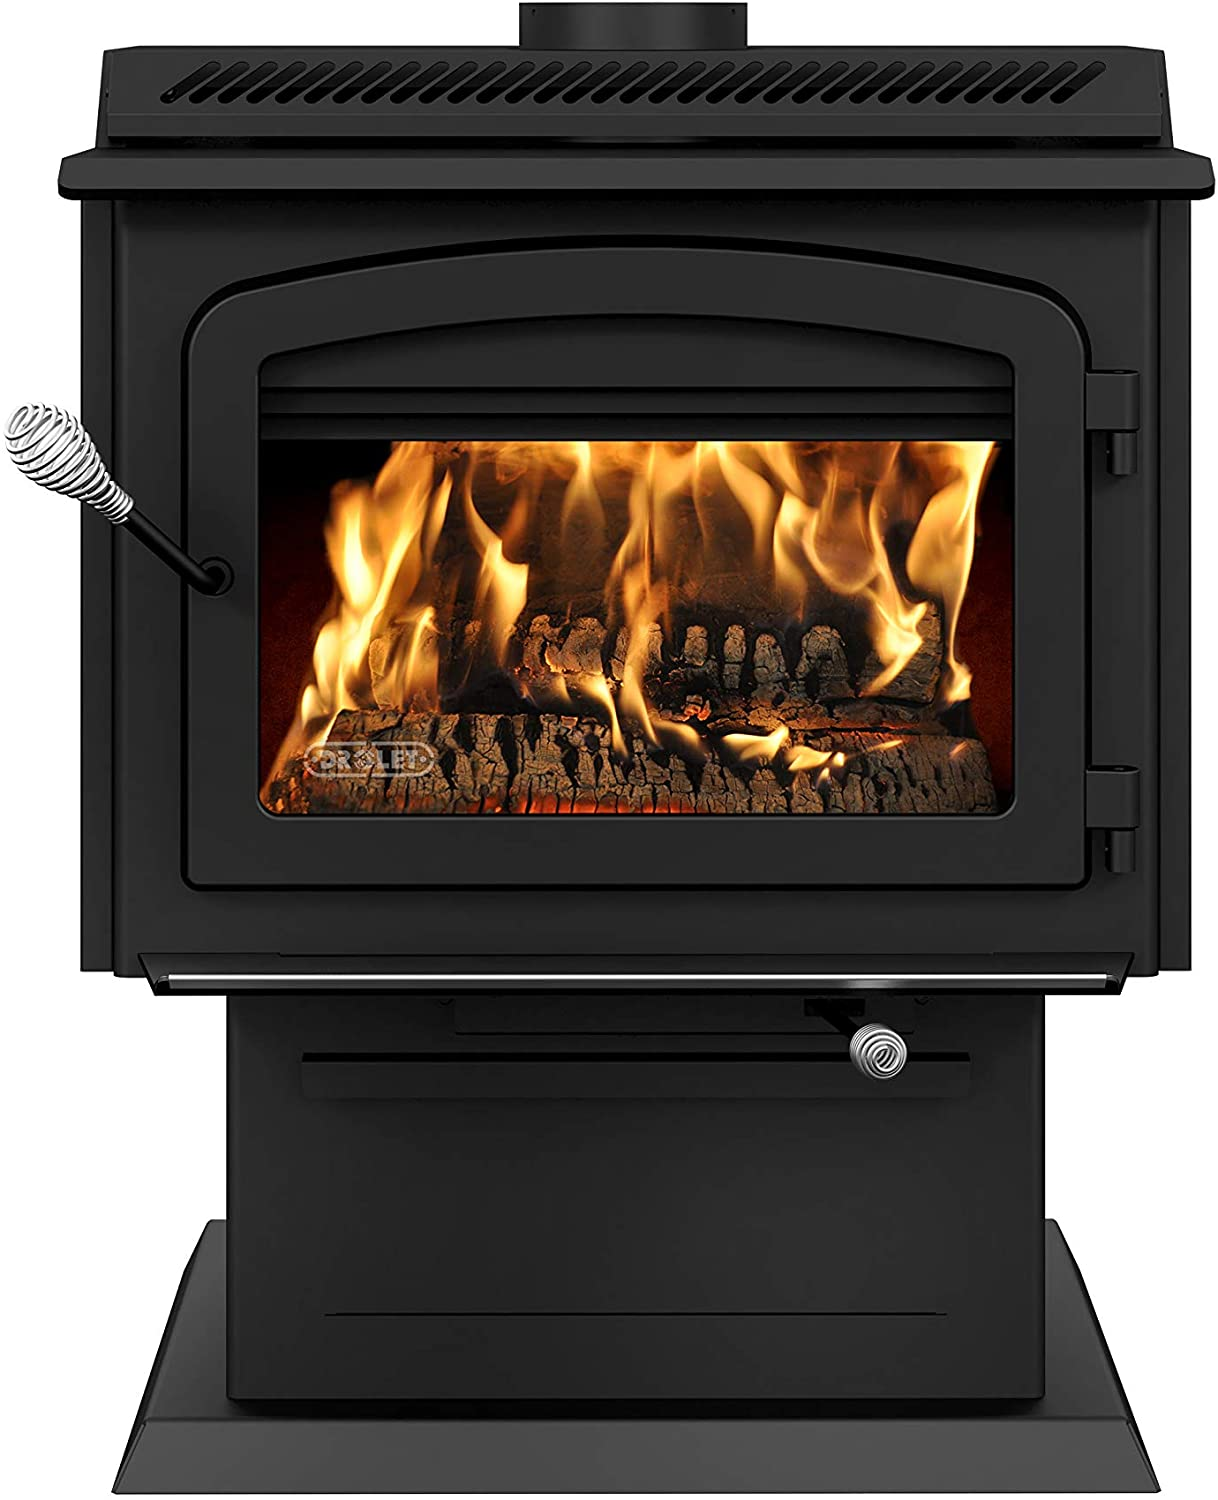 Drolet HT3000 Stove